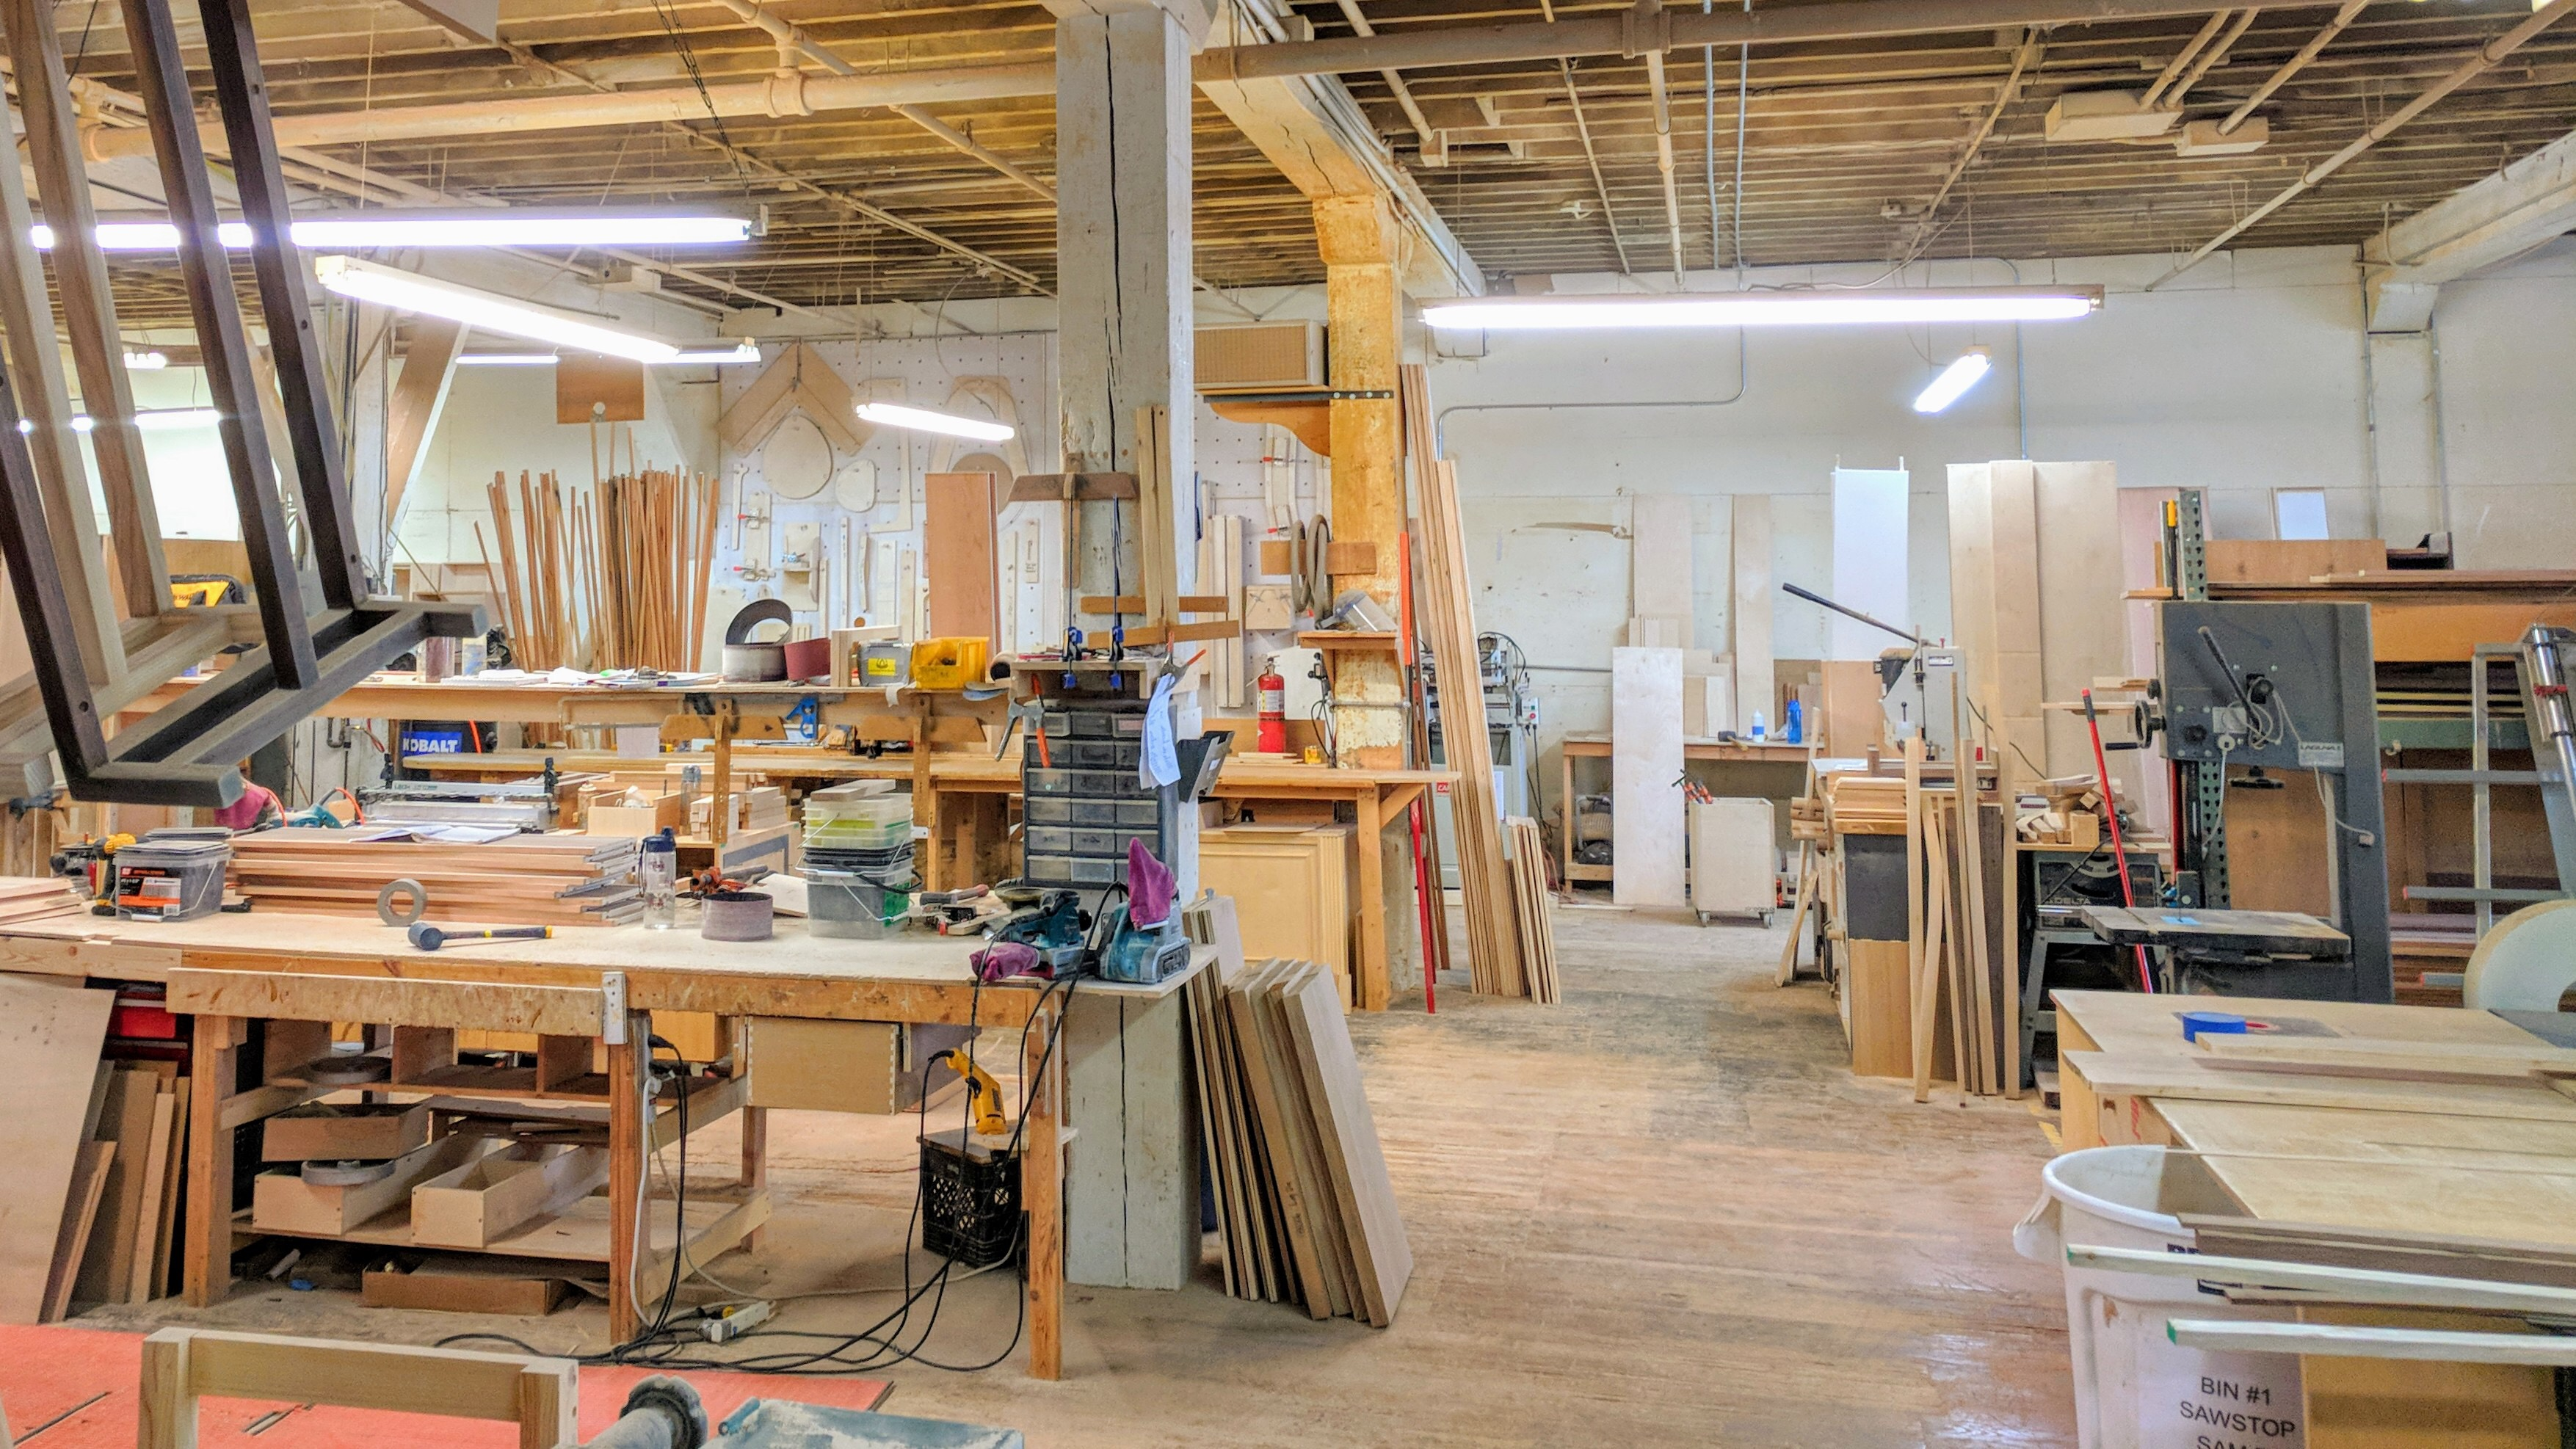 We Walked Through A Dusty Woodworking Shop Where Workers Were Building  Furniture From American Hardwoods Using Traditional Methods.